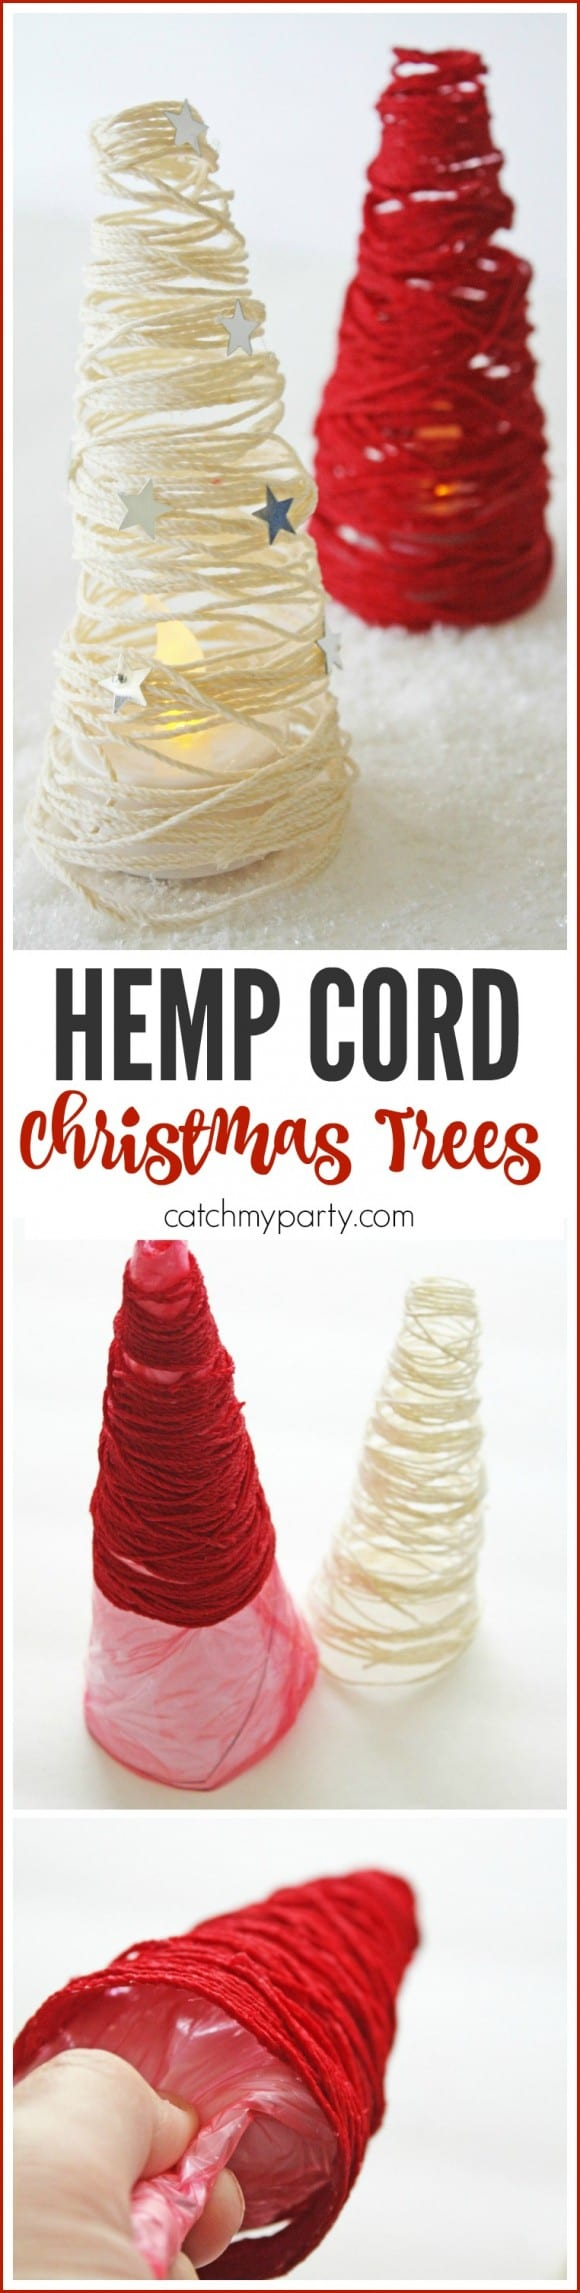 Hemp cord Christmas Tree DIY Craft | CatchMyParty.com